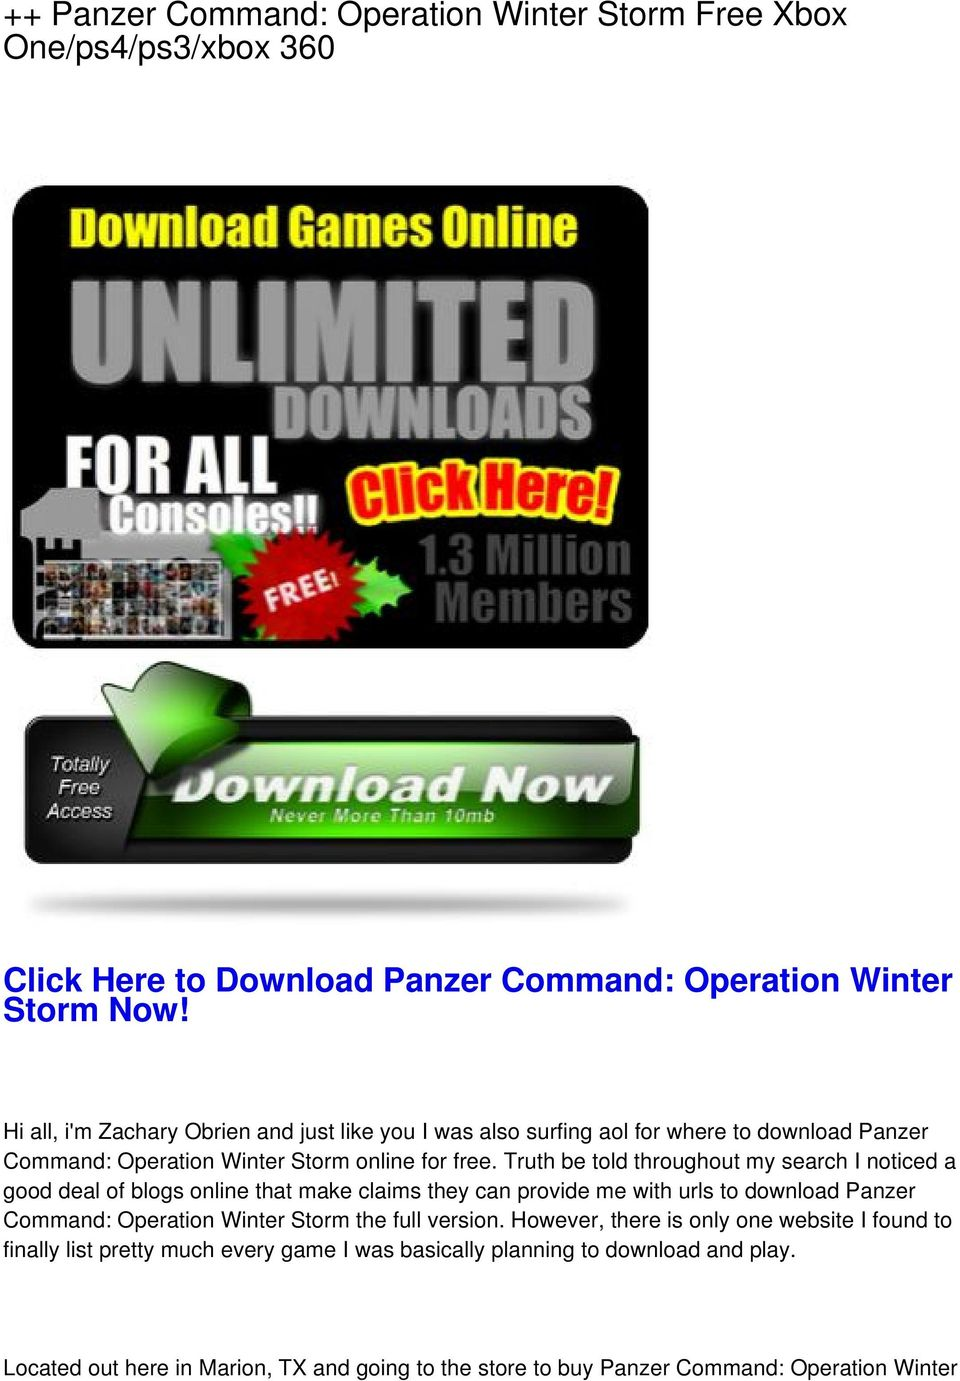 Panzer Command: Operation Winter Storm Free Xbox One/ps4/ps3